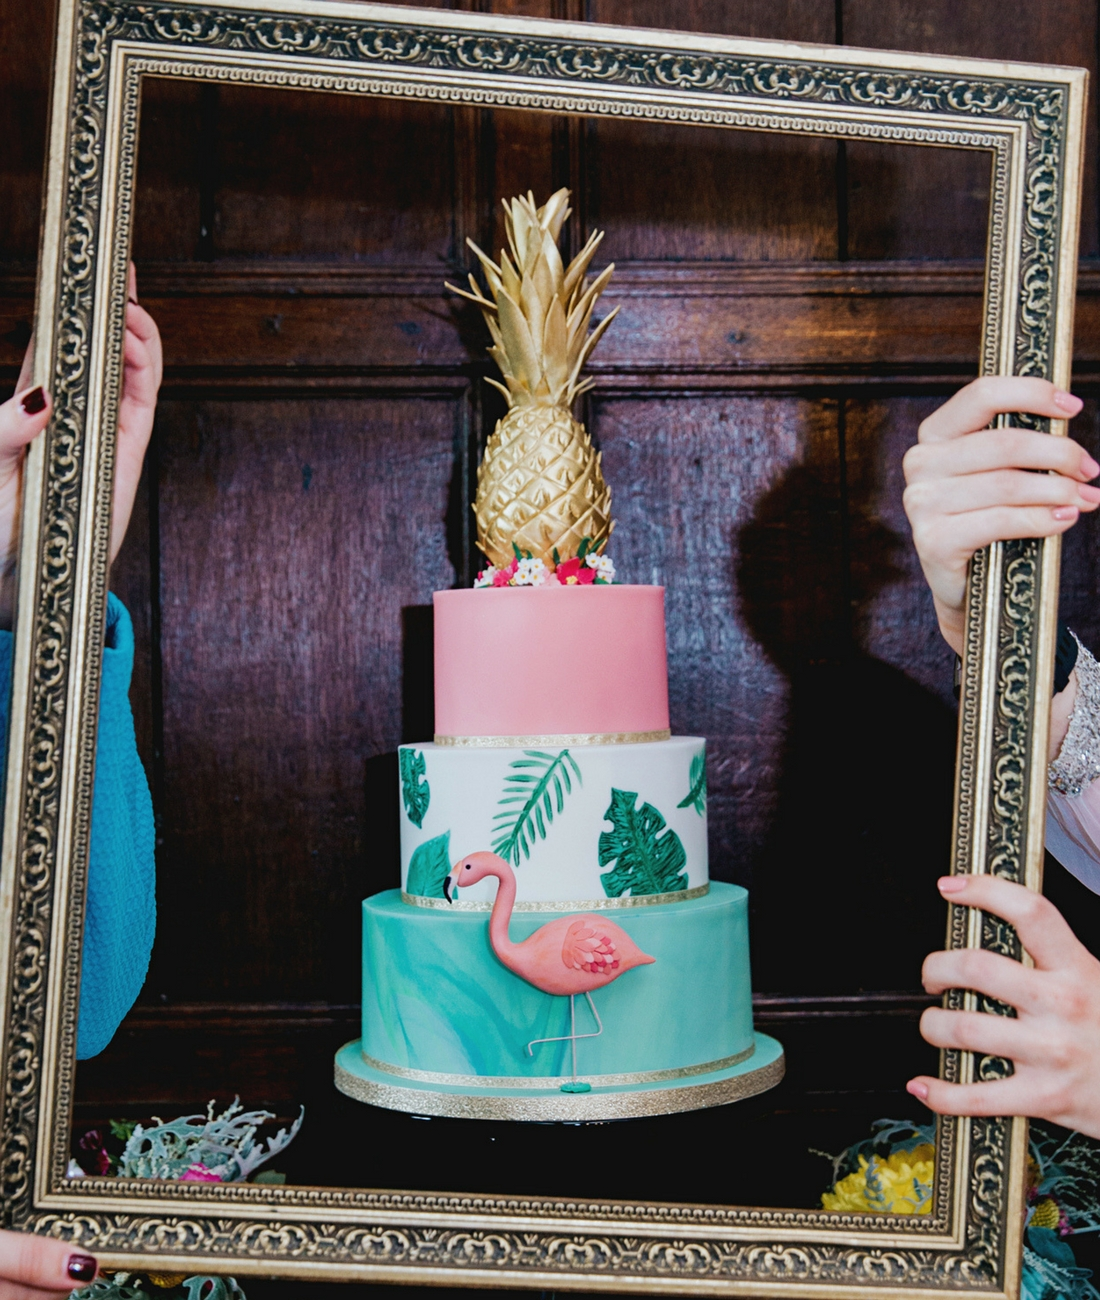 Love Artisan Wedding Cakes - Three Tier Tropical Golden Pineapple Wedding Cake